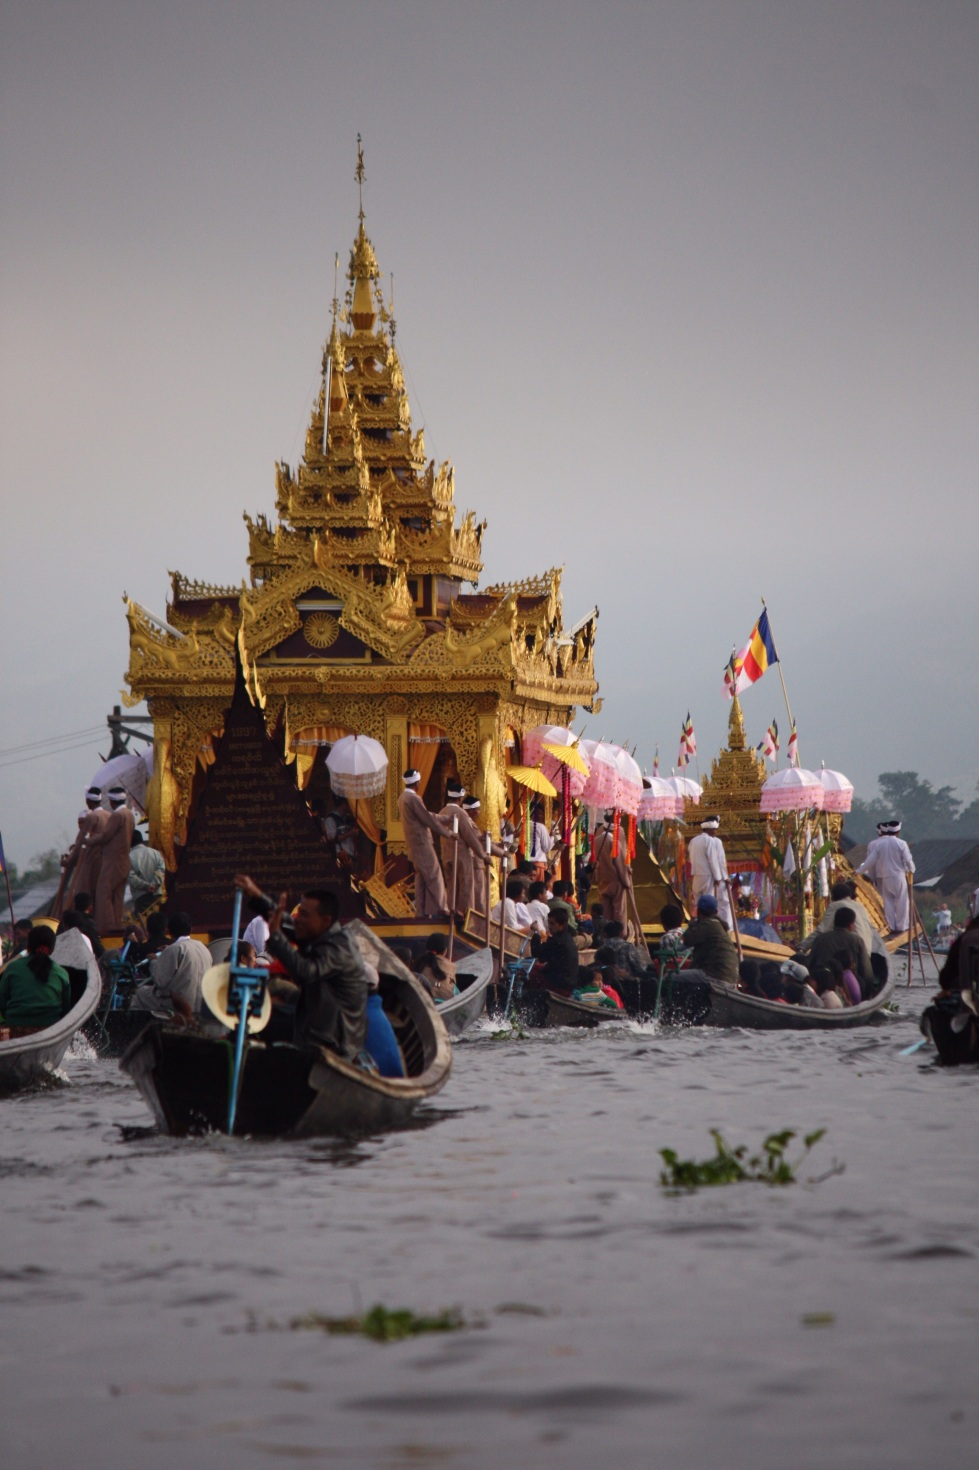 Ceremonial barge, Phaung Daw Oo Pagoda Festival, Inle Lake, October 2012